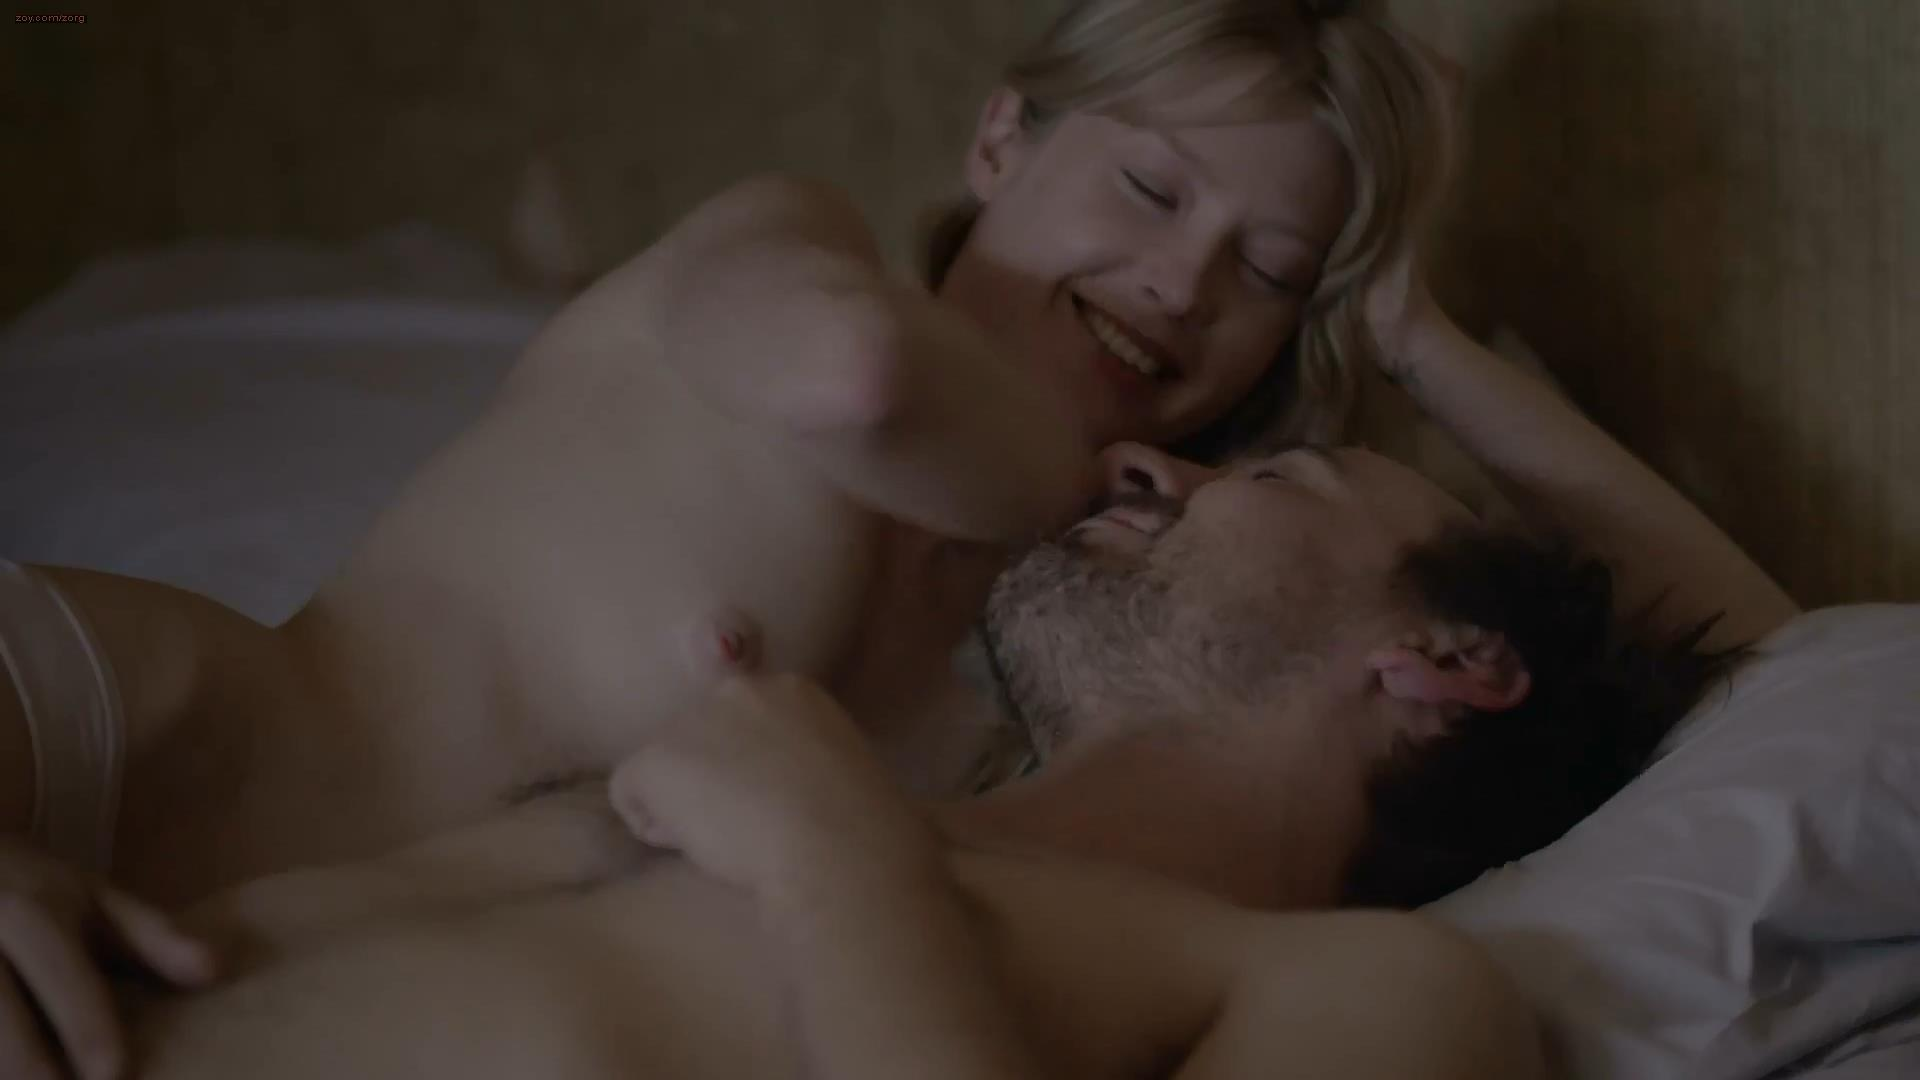 Allison Janney Nudography emma booth nude topless - scene 16 hd1080p(short)